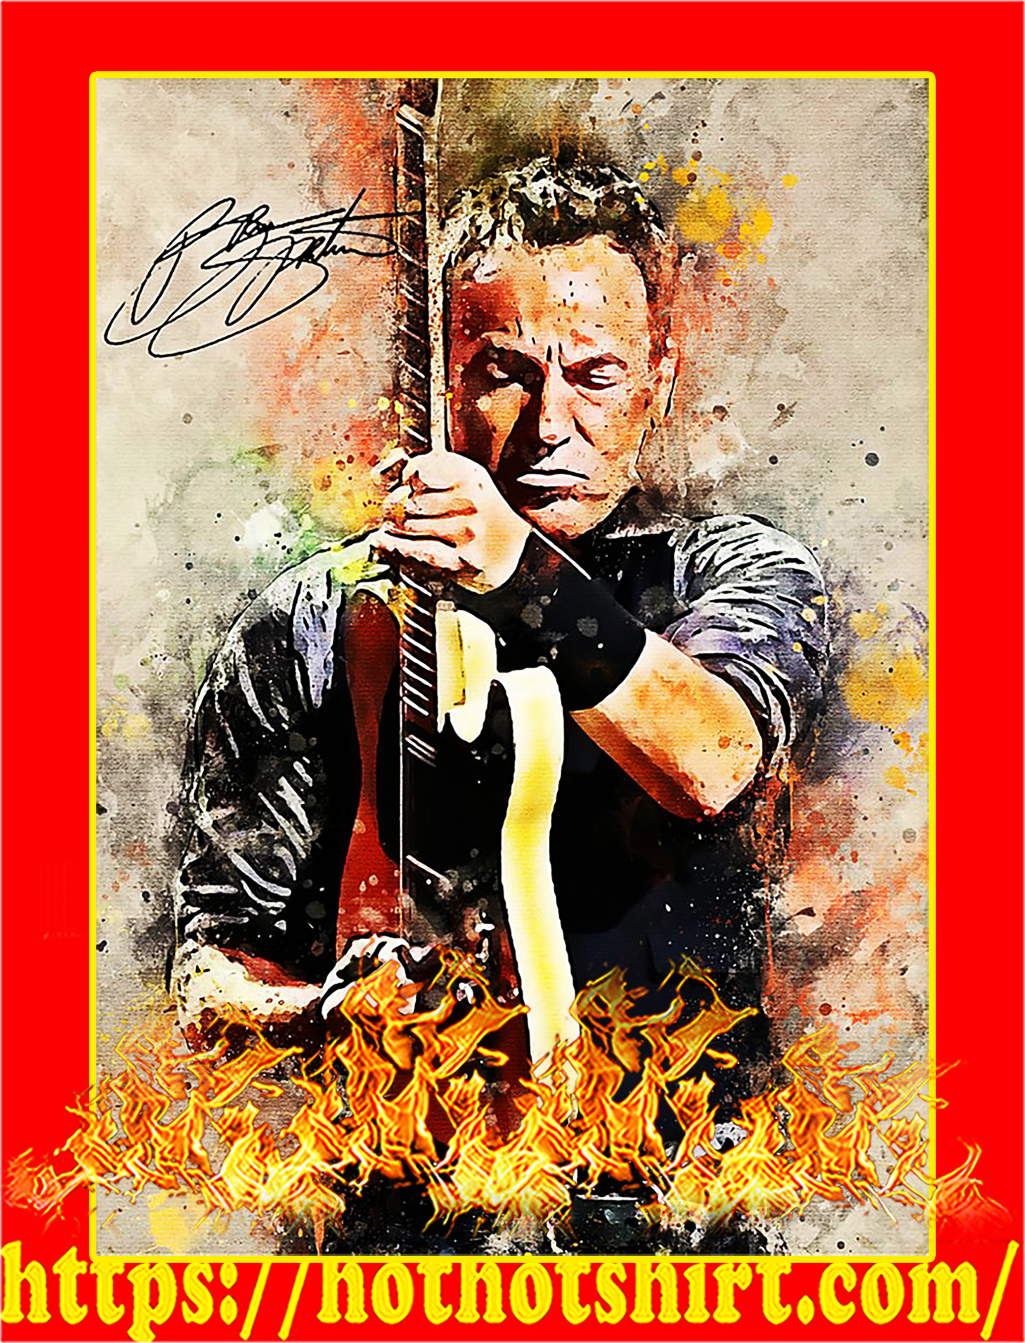 Legend bruce springsteen signature poster - A2